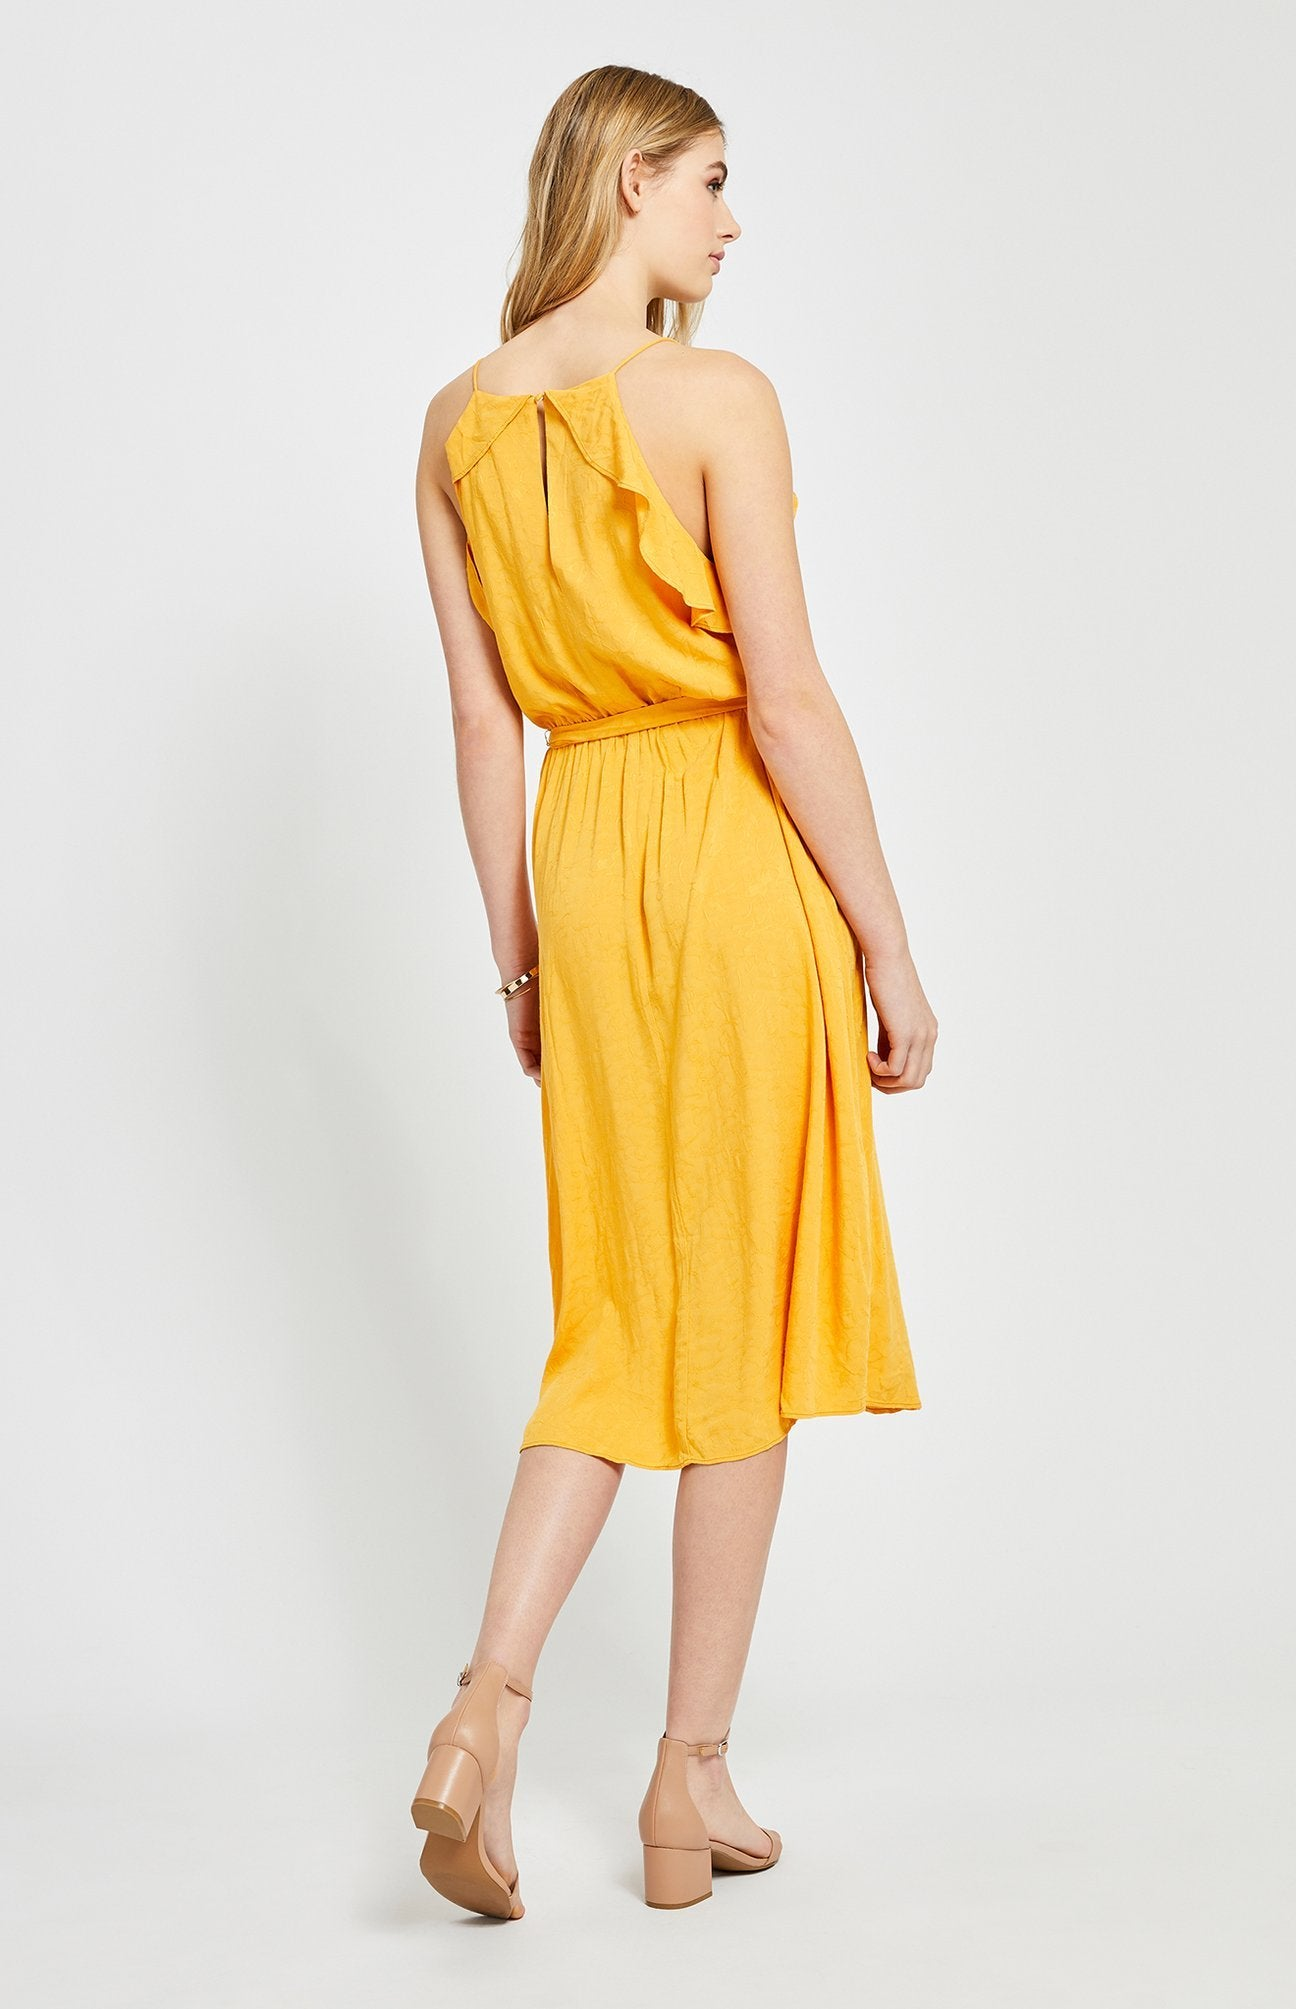 Genevieve Dress-Cocktail Dresses-Gentle Fawn-Coda & Cade